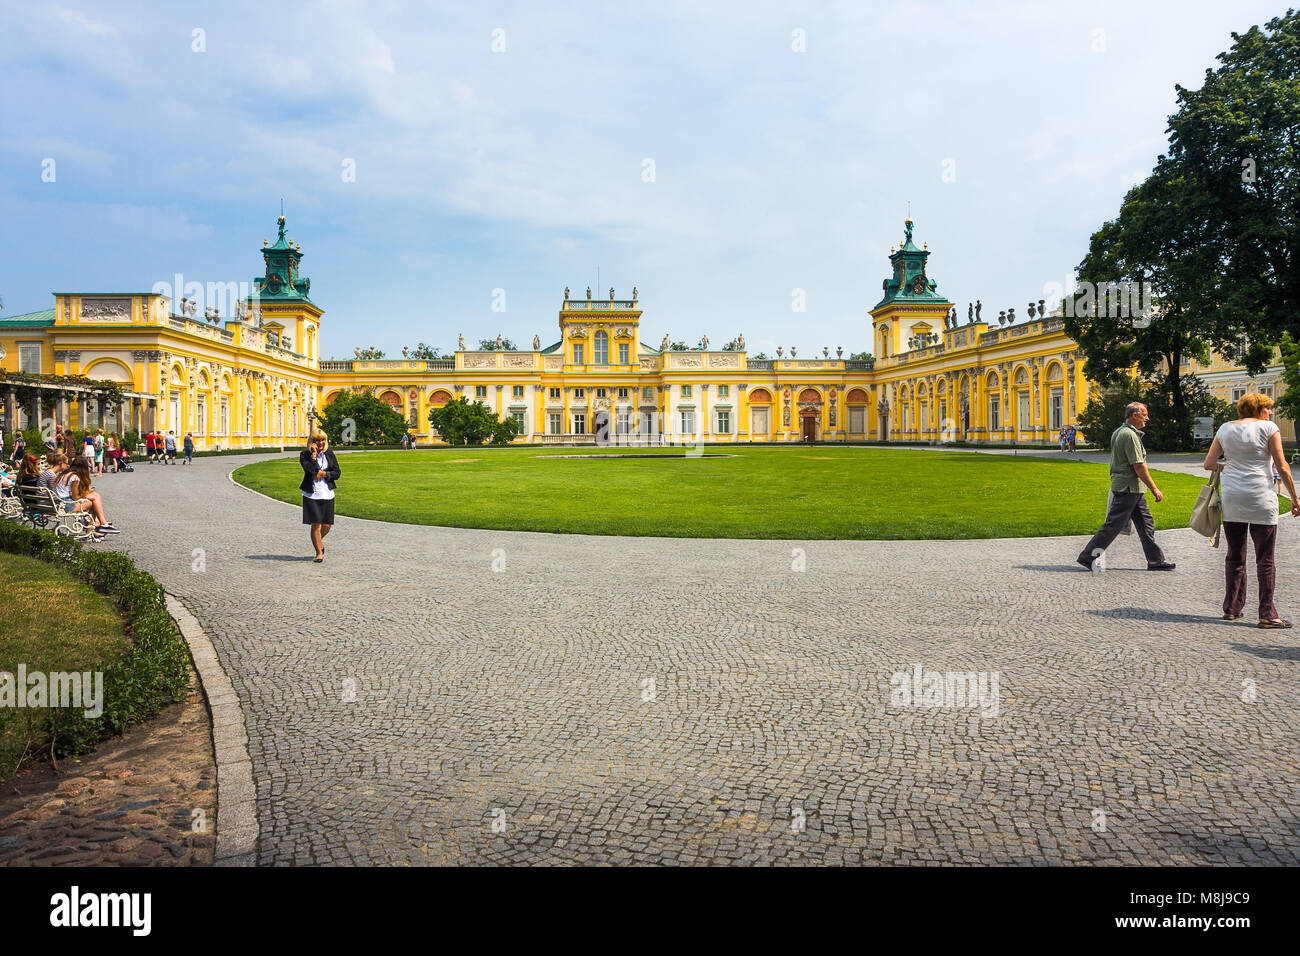 WARSAW, POLAND - JULY 26, 2014:  Wilanow Royal Palace main yard with tourists - Stock Image